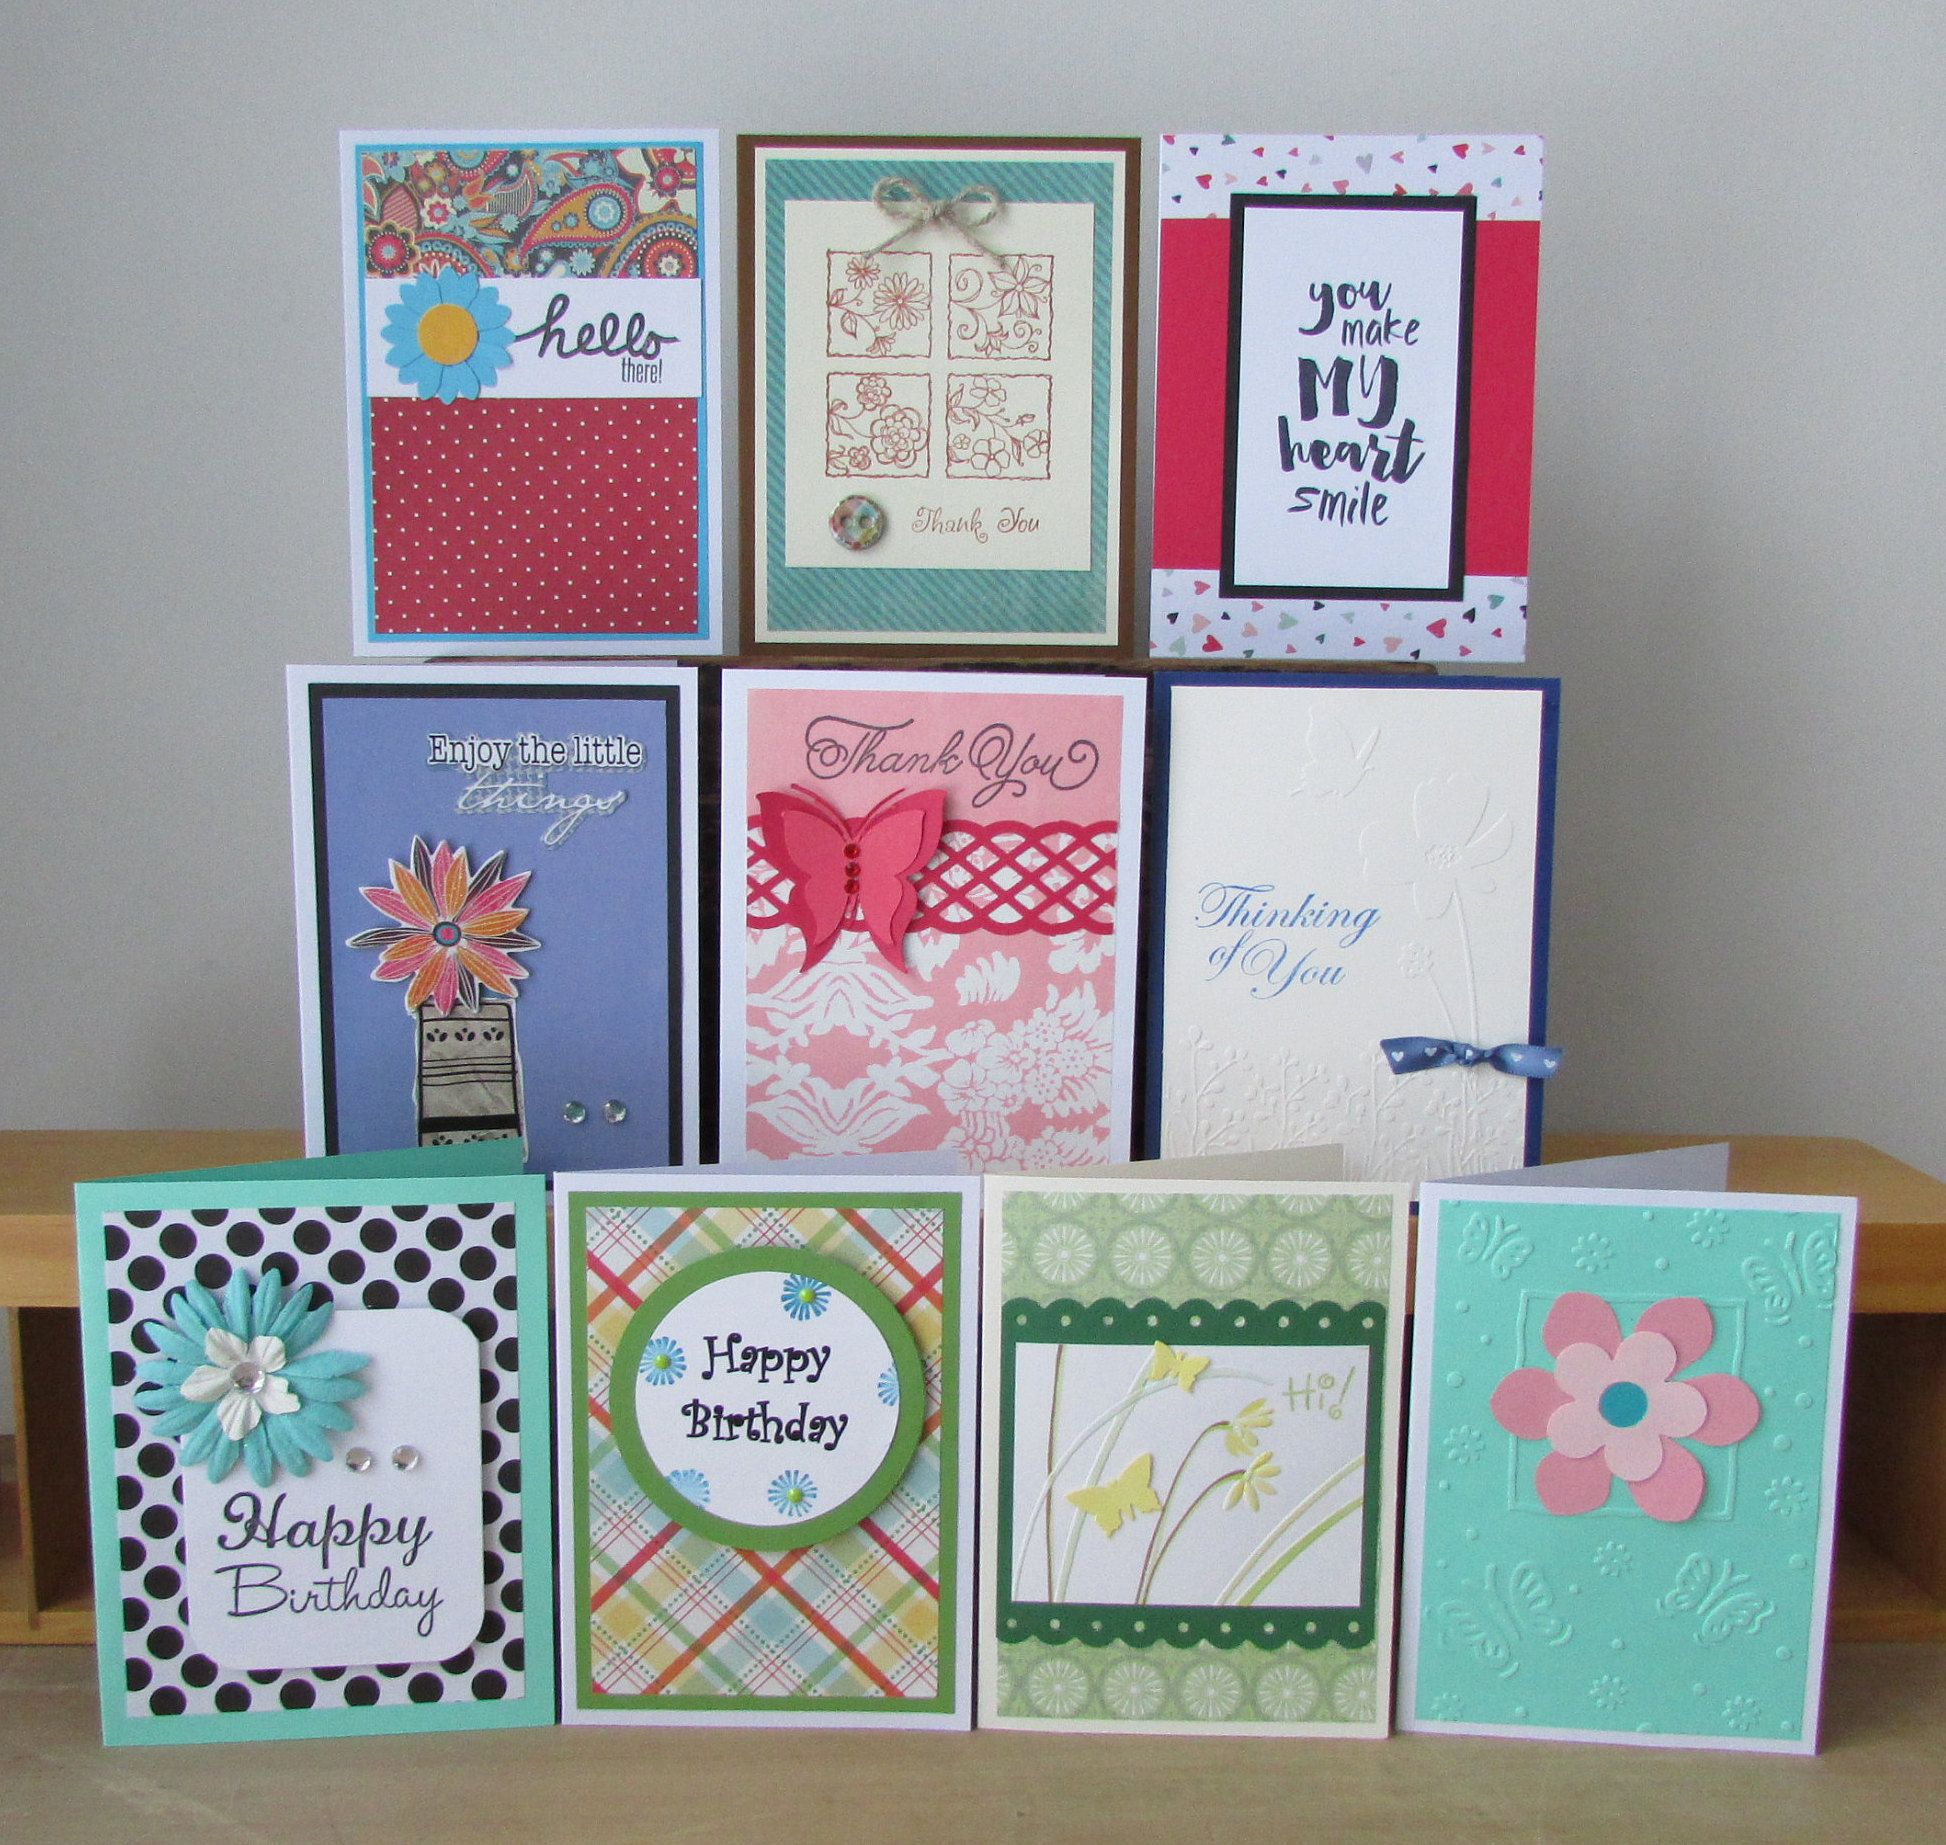 Card Sets 10 Assorted Greeting Cards All Occasion Cards Etsy Assorted Greeting Cards Cards Handmade Birthday Cards